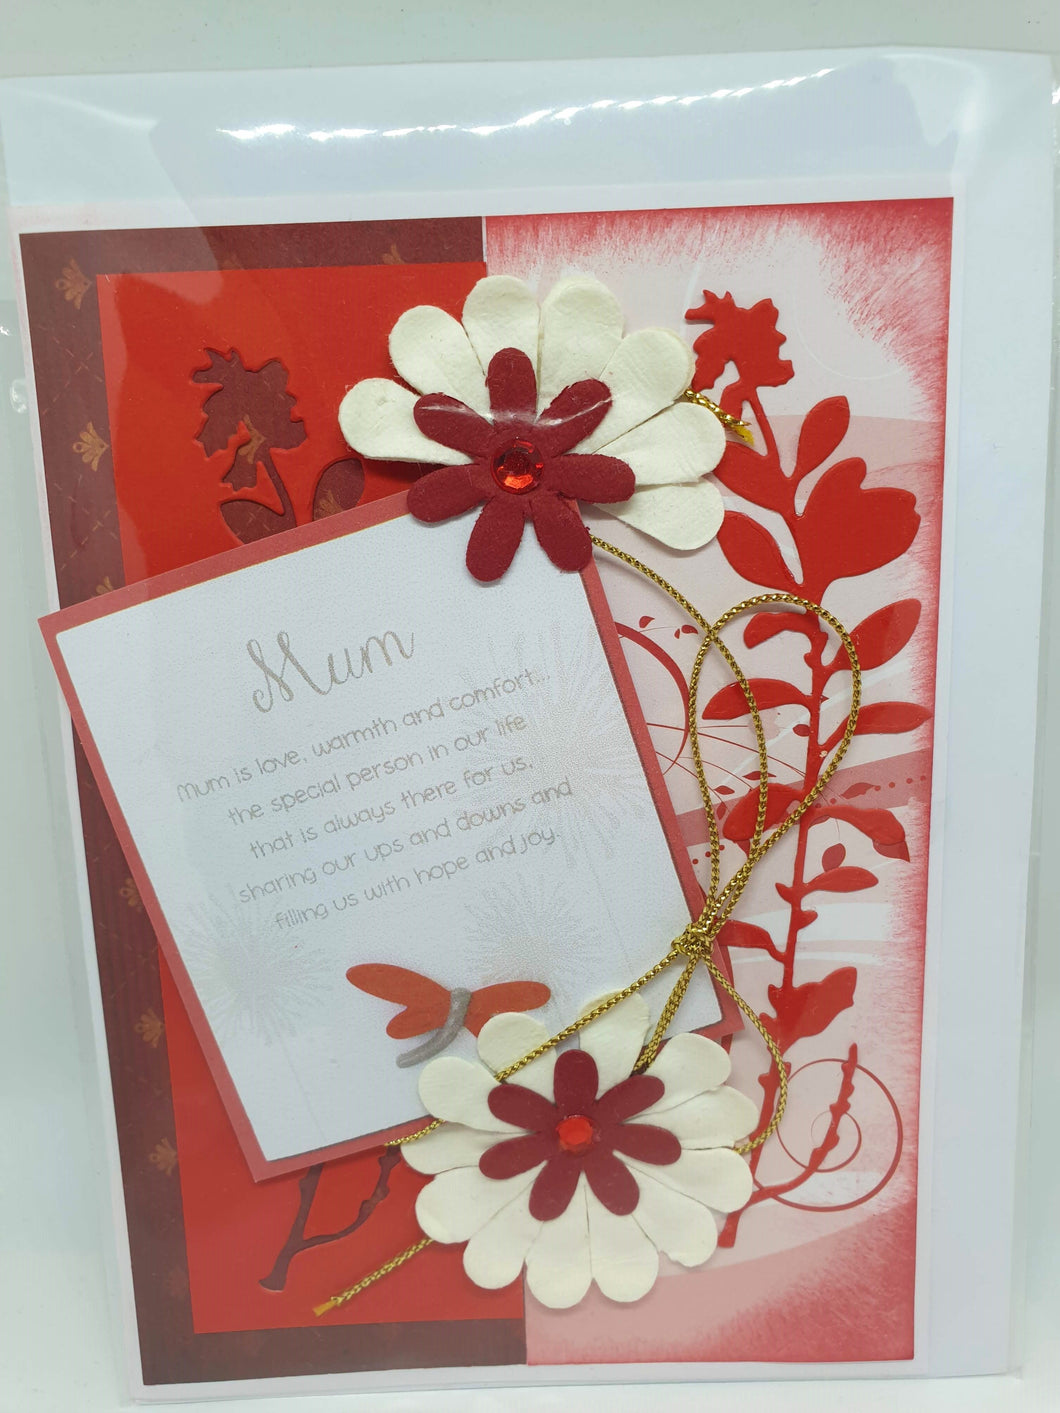 Handmade Mother's Day Cards - Mum is a special person-Homewares-Atelier Crafers